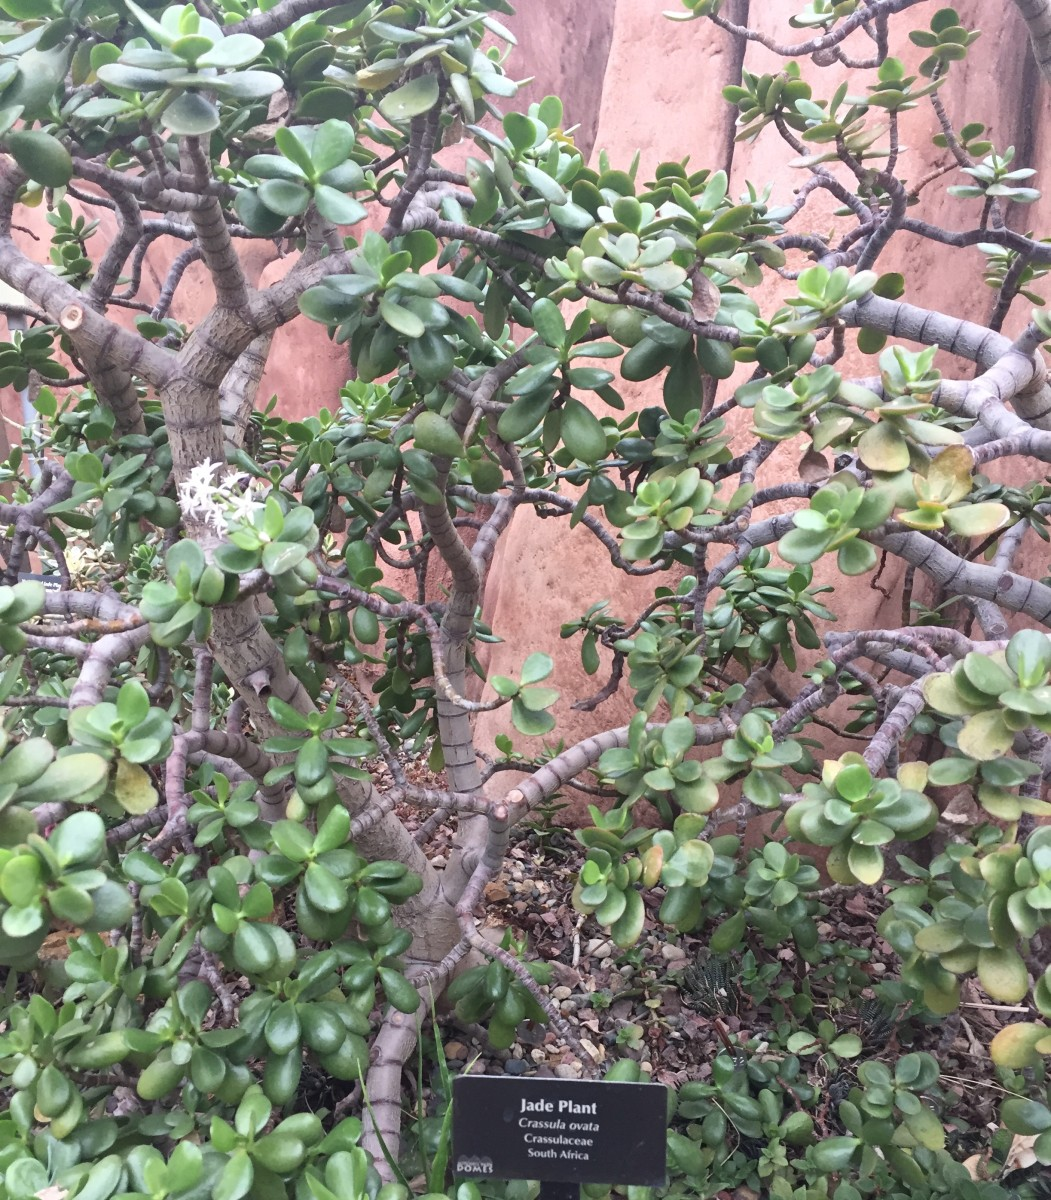 A mature jade plant at the Mitchell Domes Horticultural Conservatory in Milwaukee, WI.